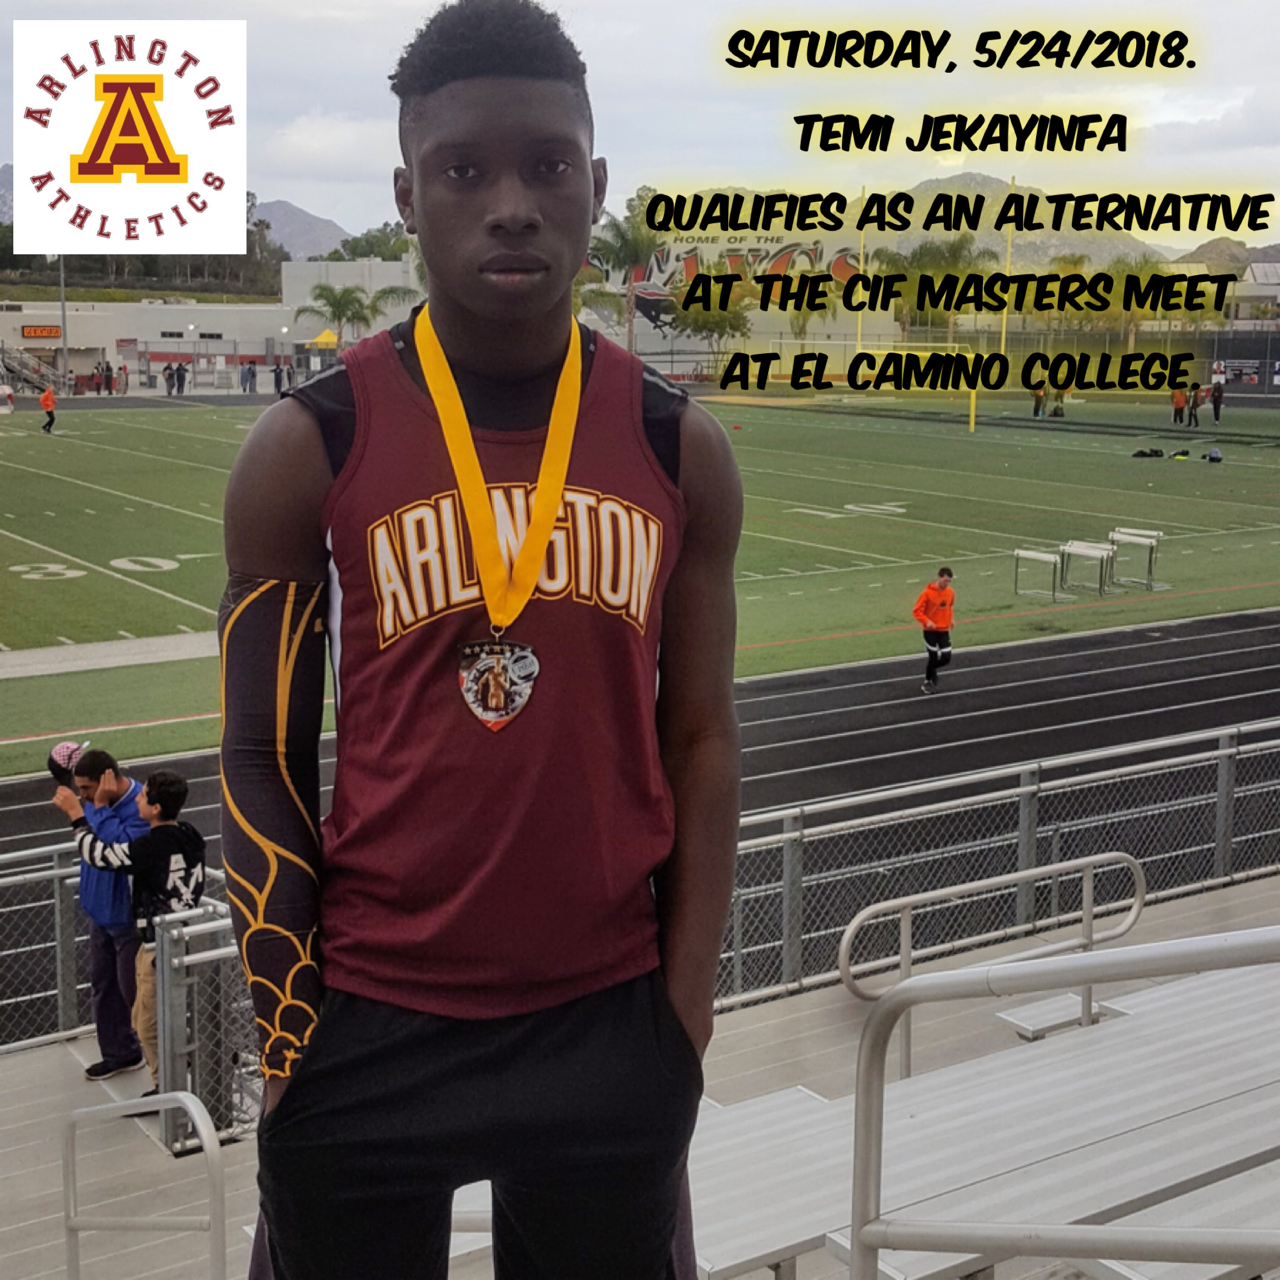 CiF Masters Meet: Track and Field at El Camino College, Saturday, 5/26.